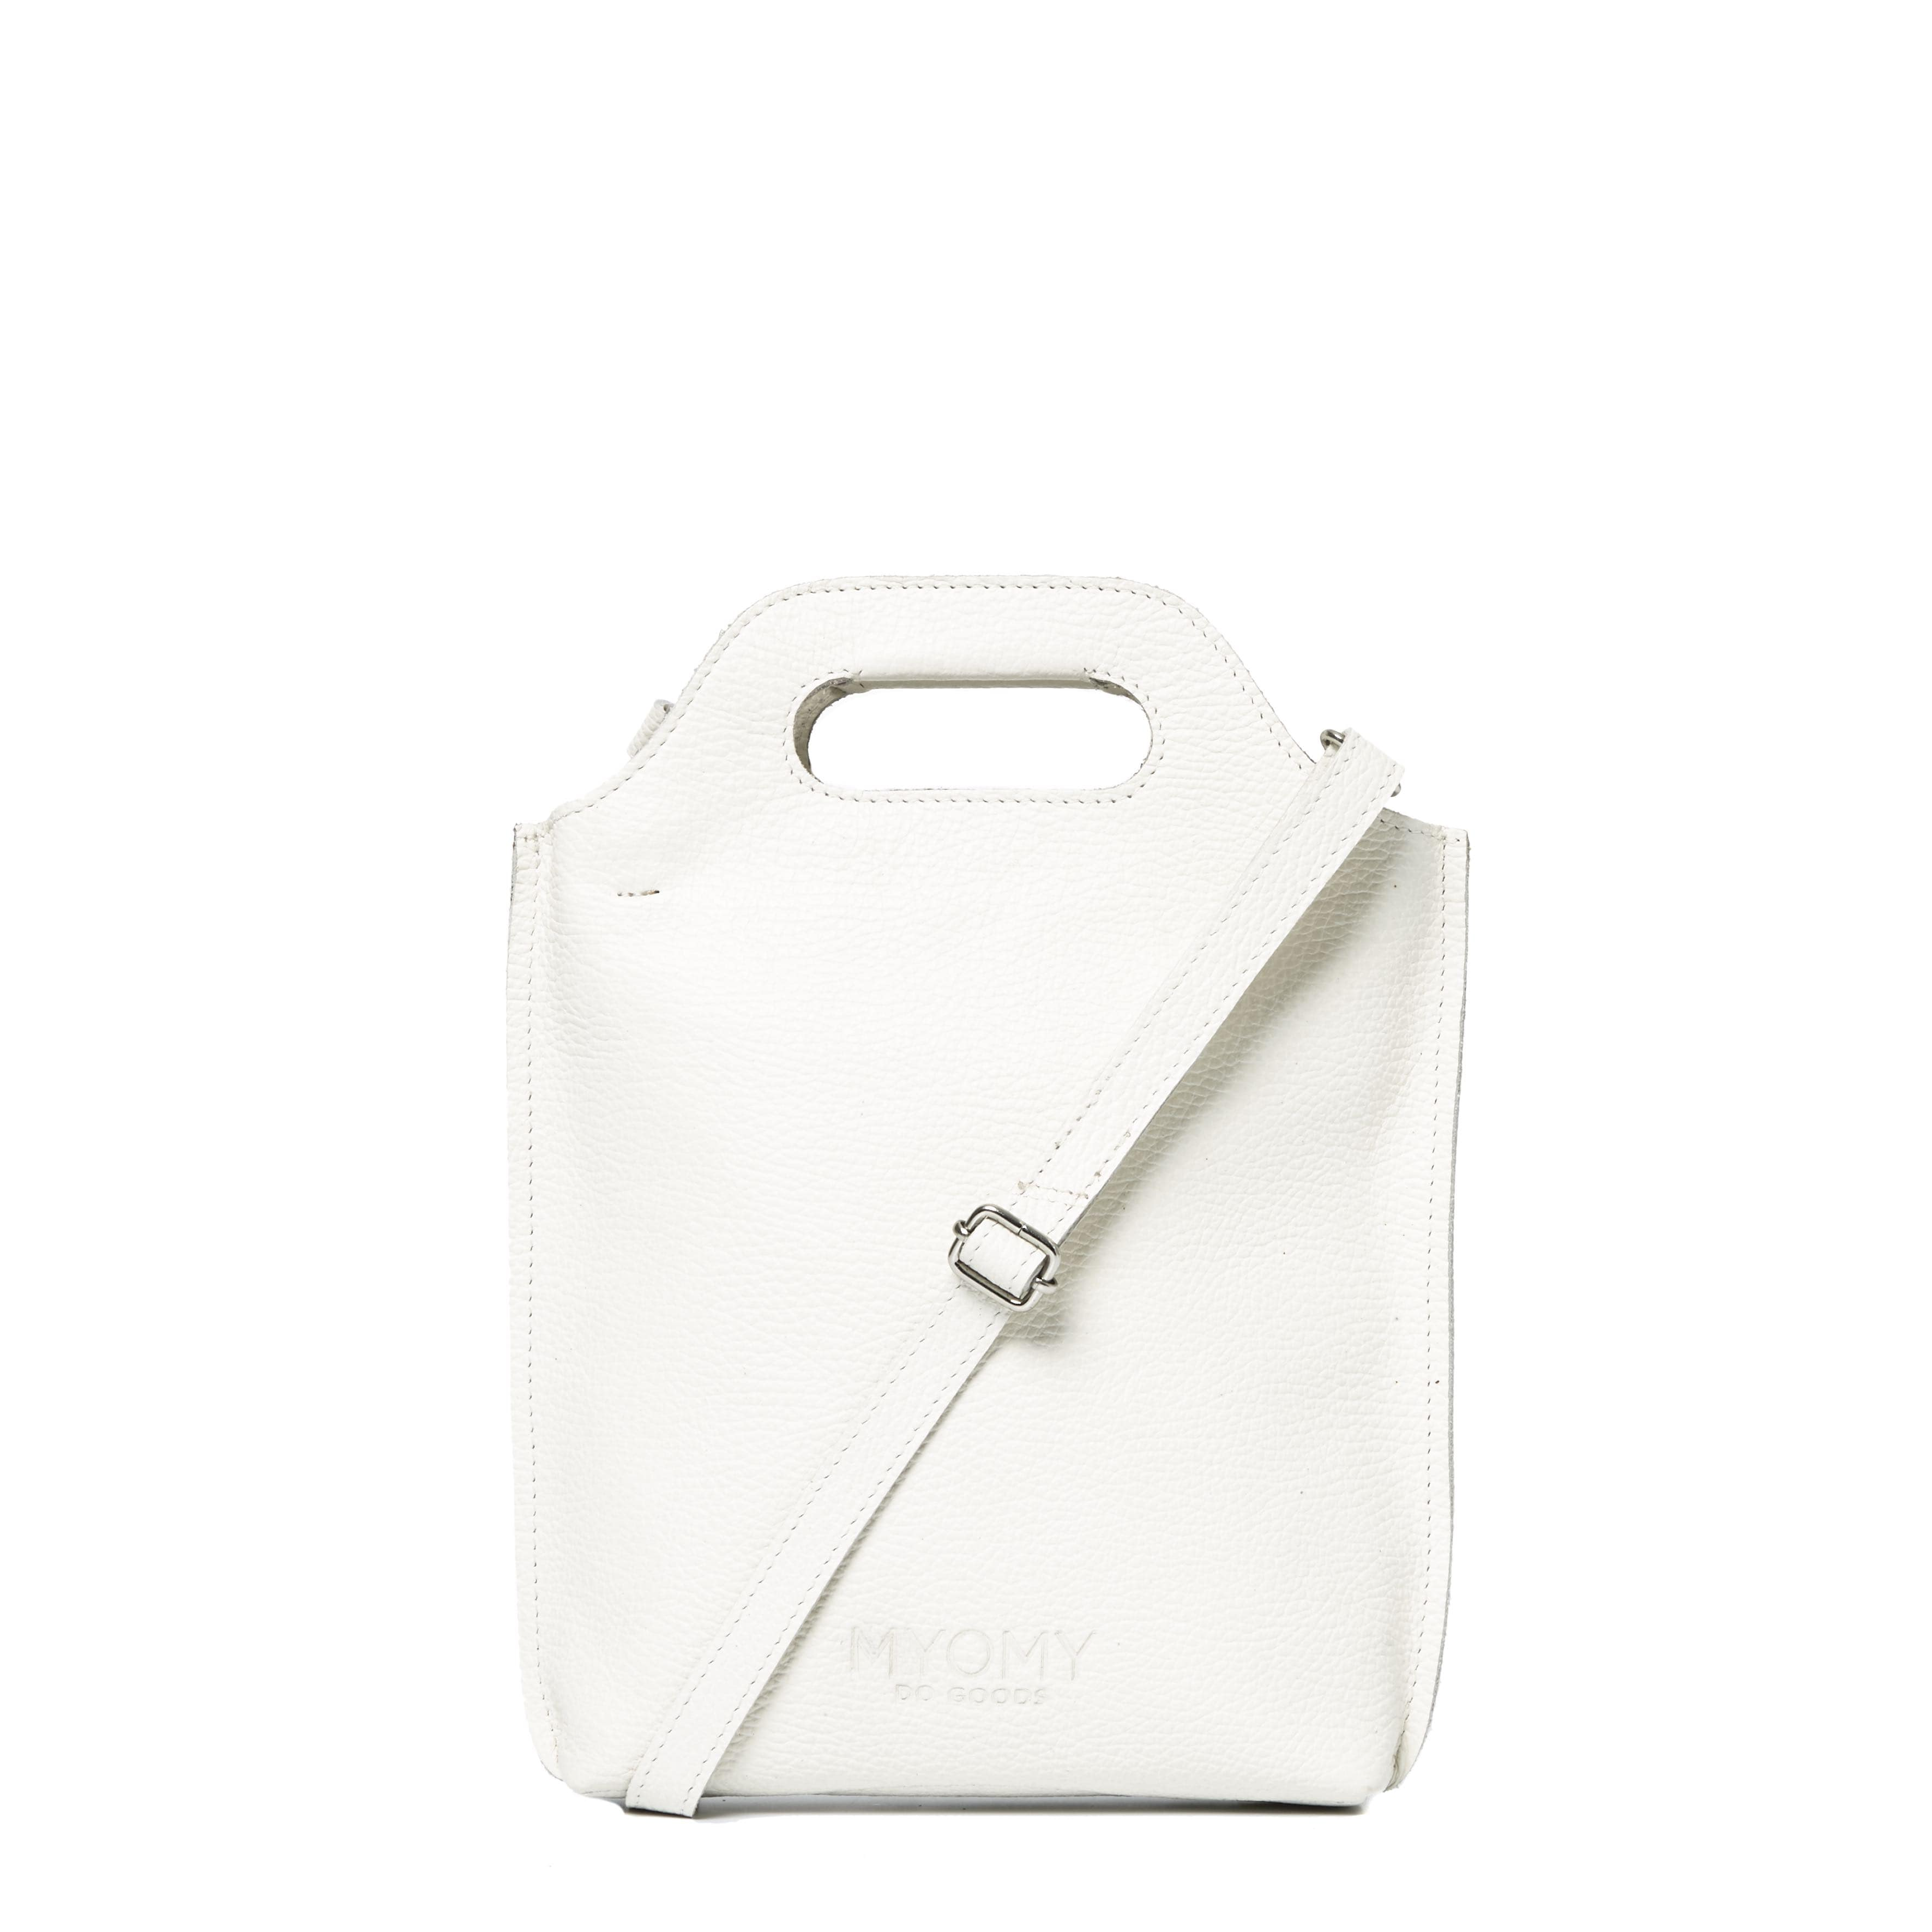 MY CARRY BAG Baggy – rambler white